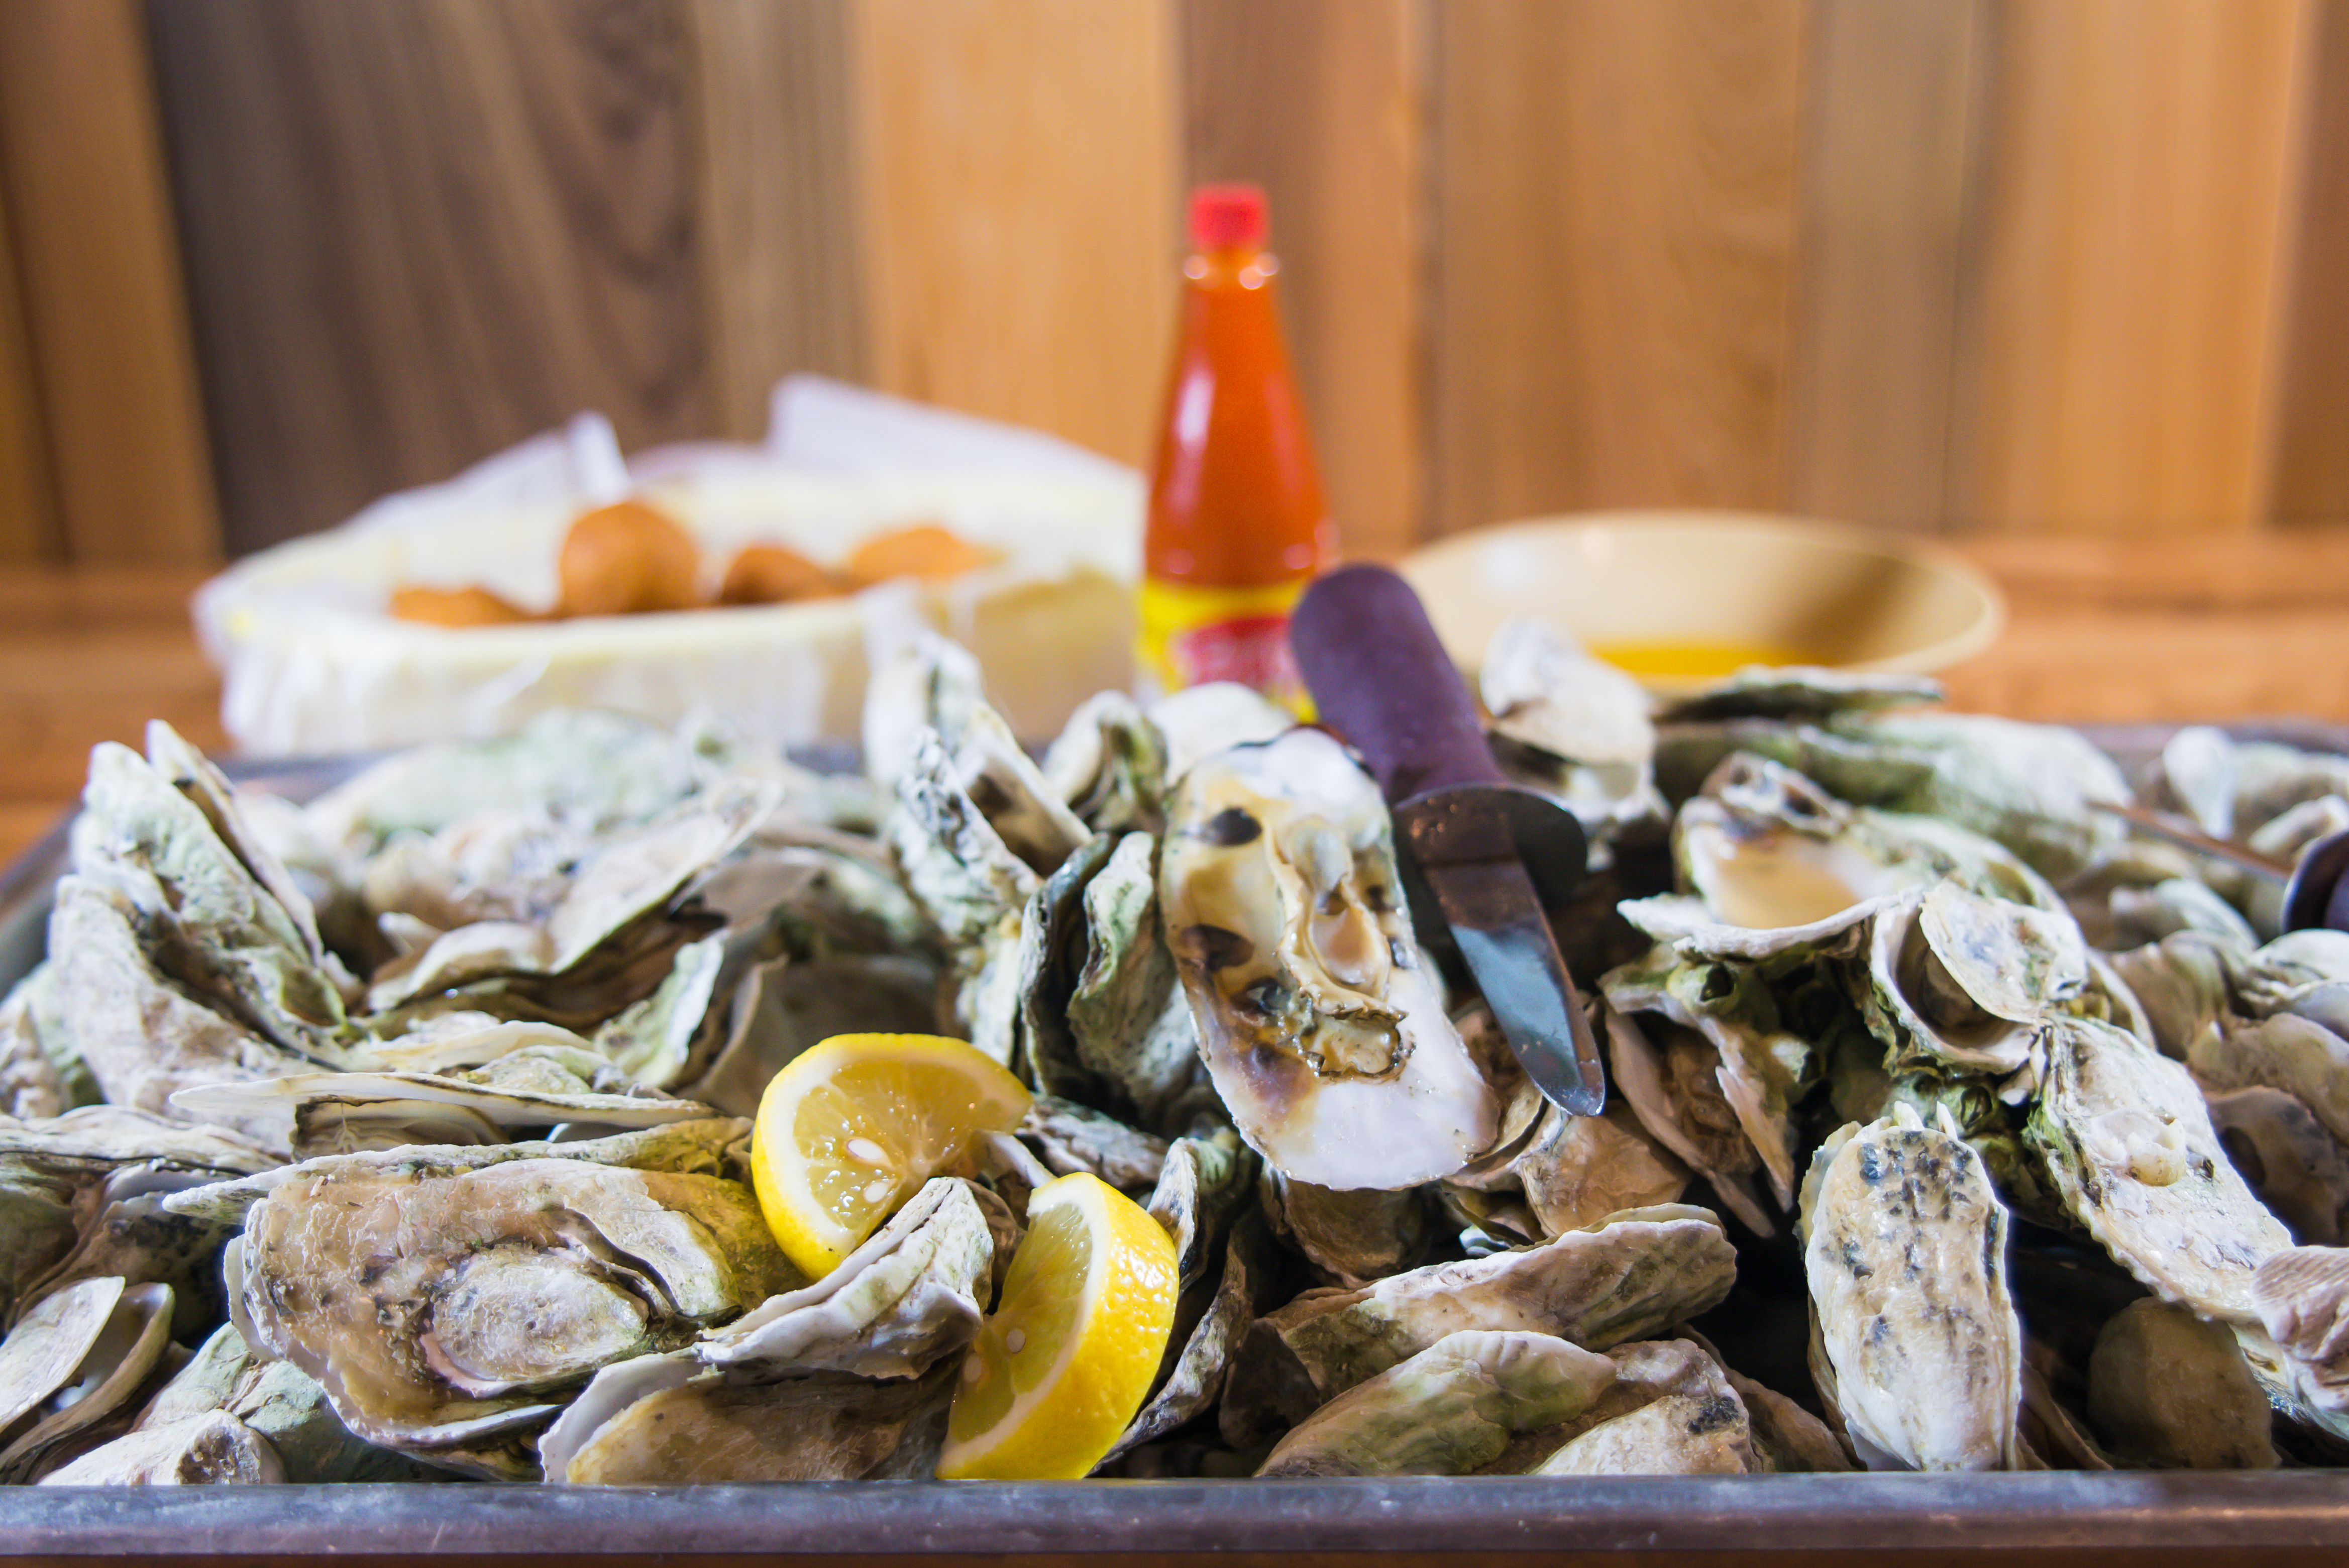 Dales Seafood Whiteville (38)